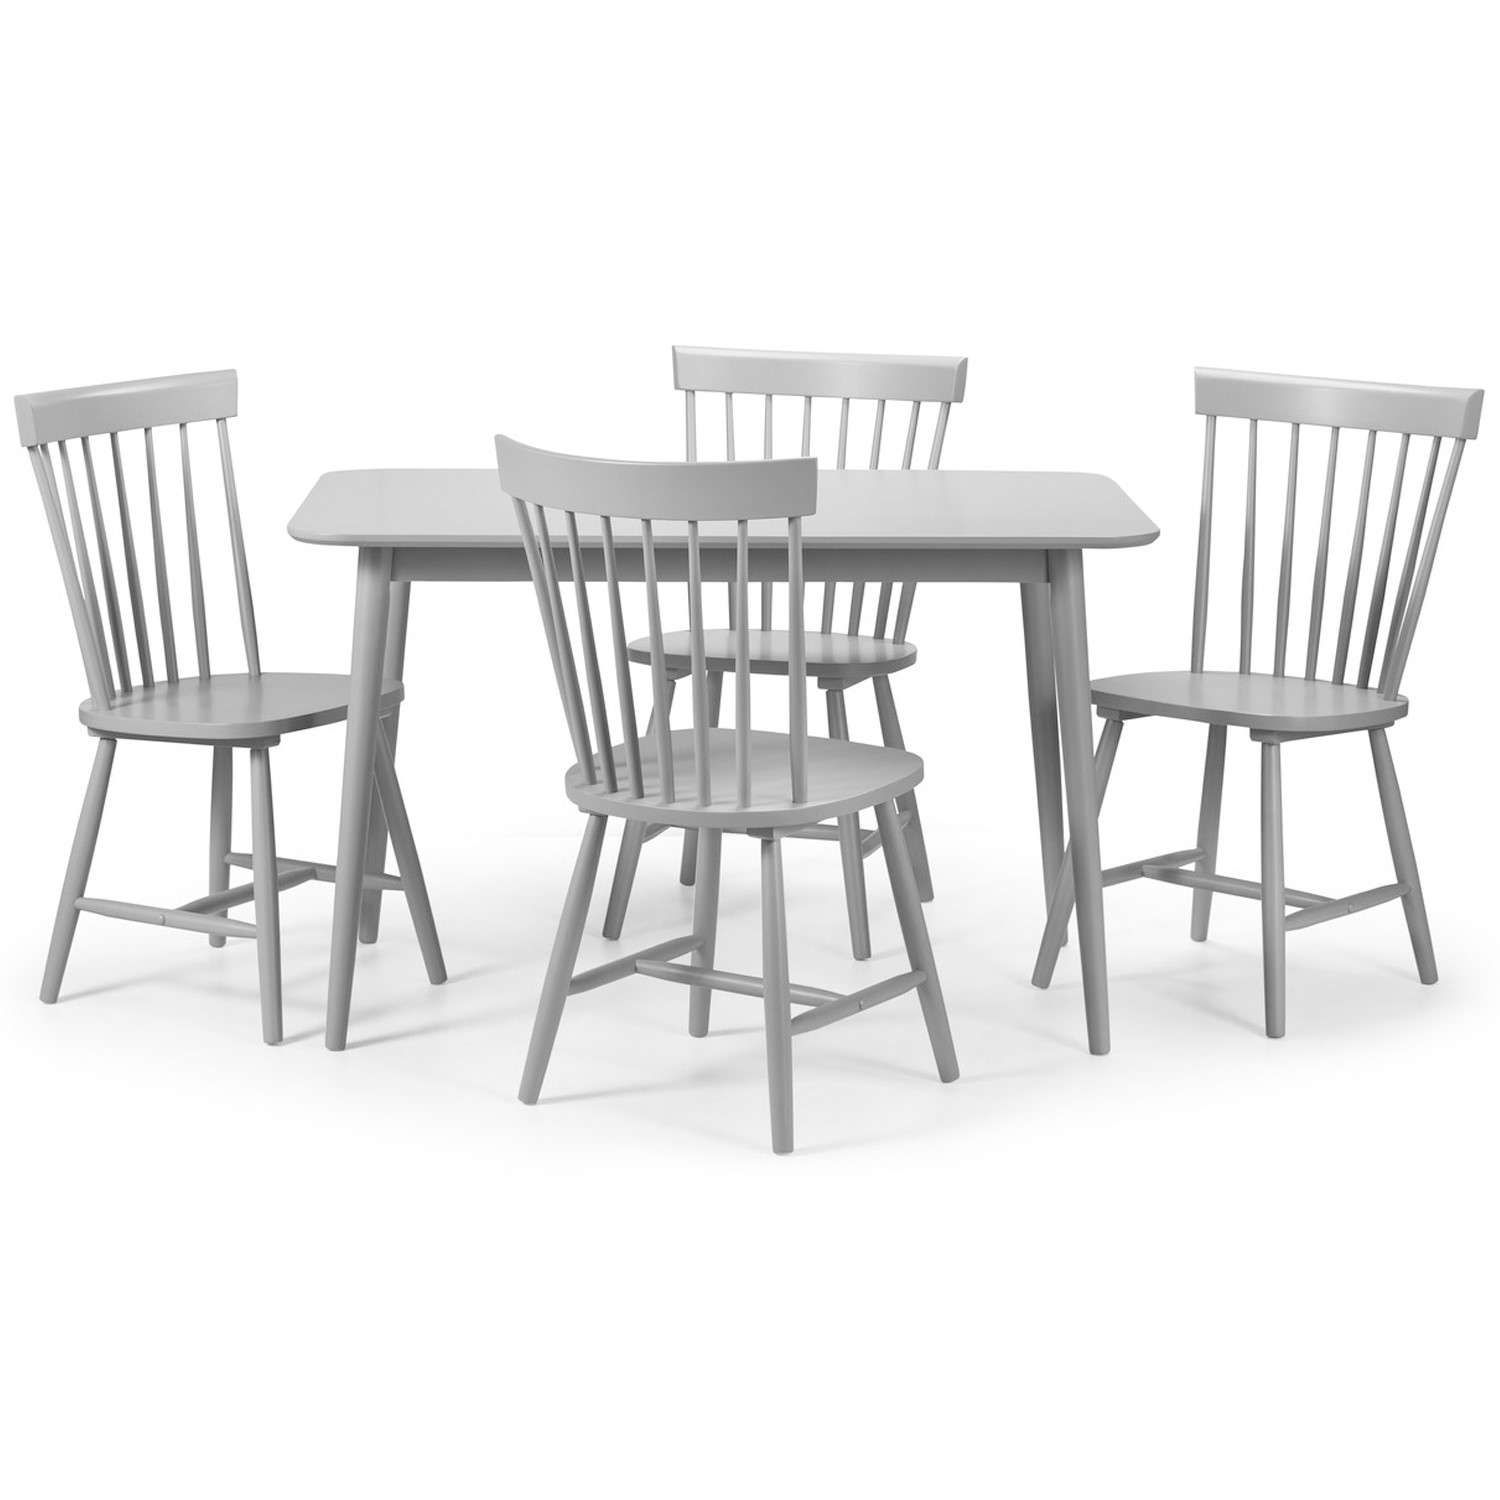 Julian Bowen Torino Grey Dining Table And 4 Torino Grey Chairs